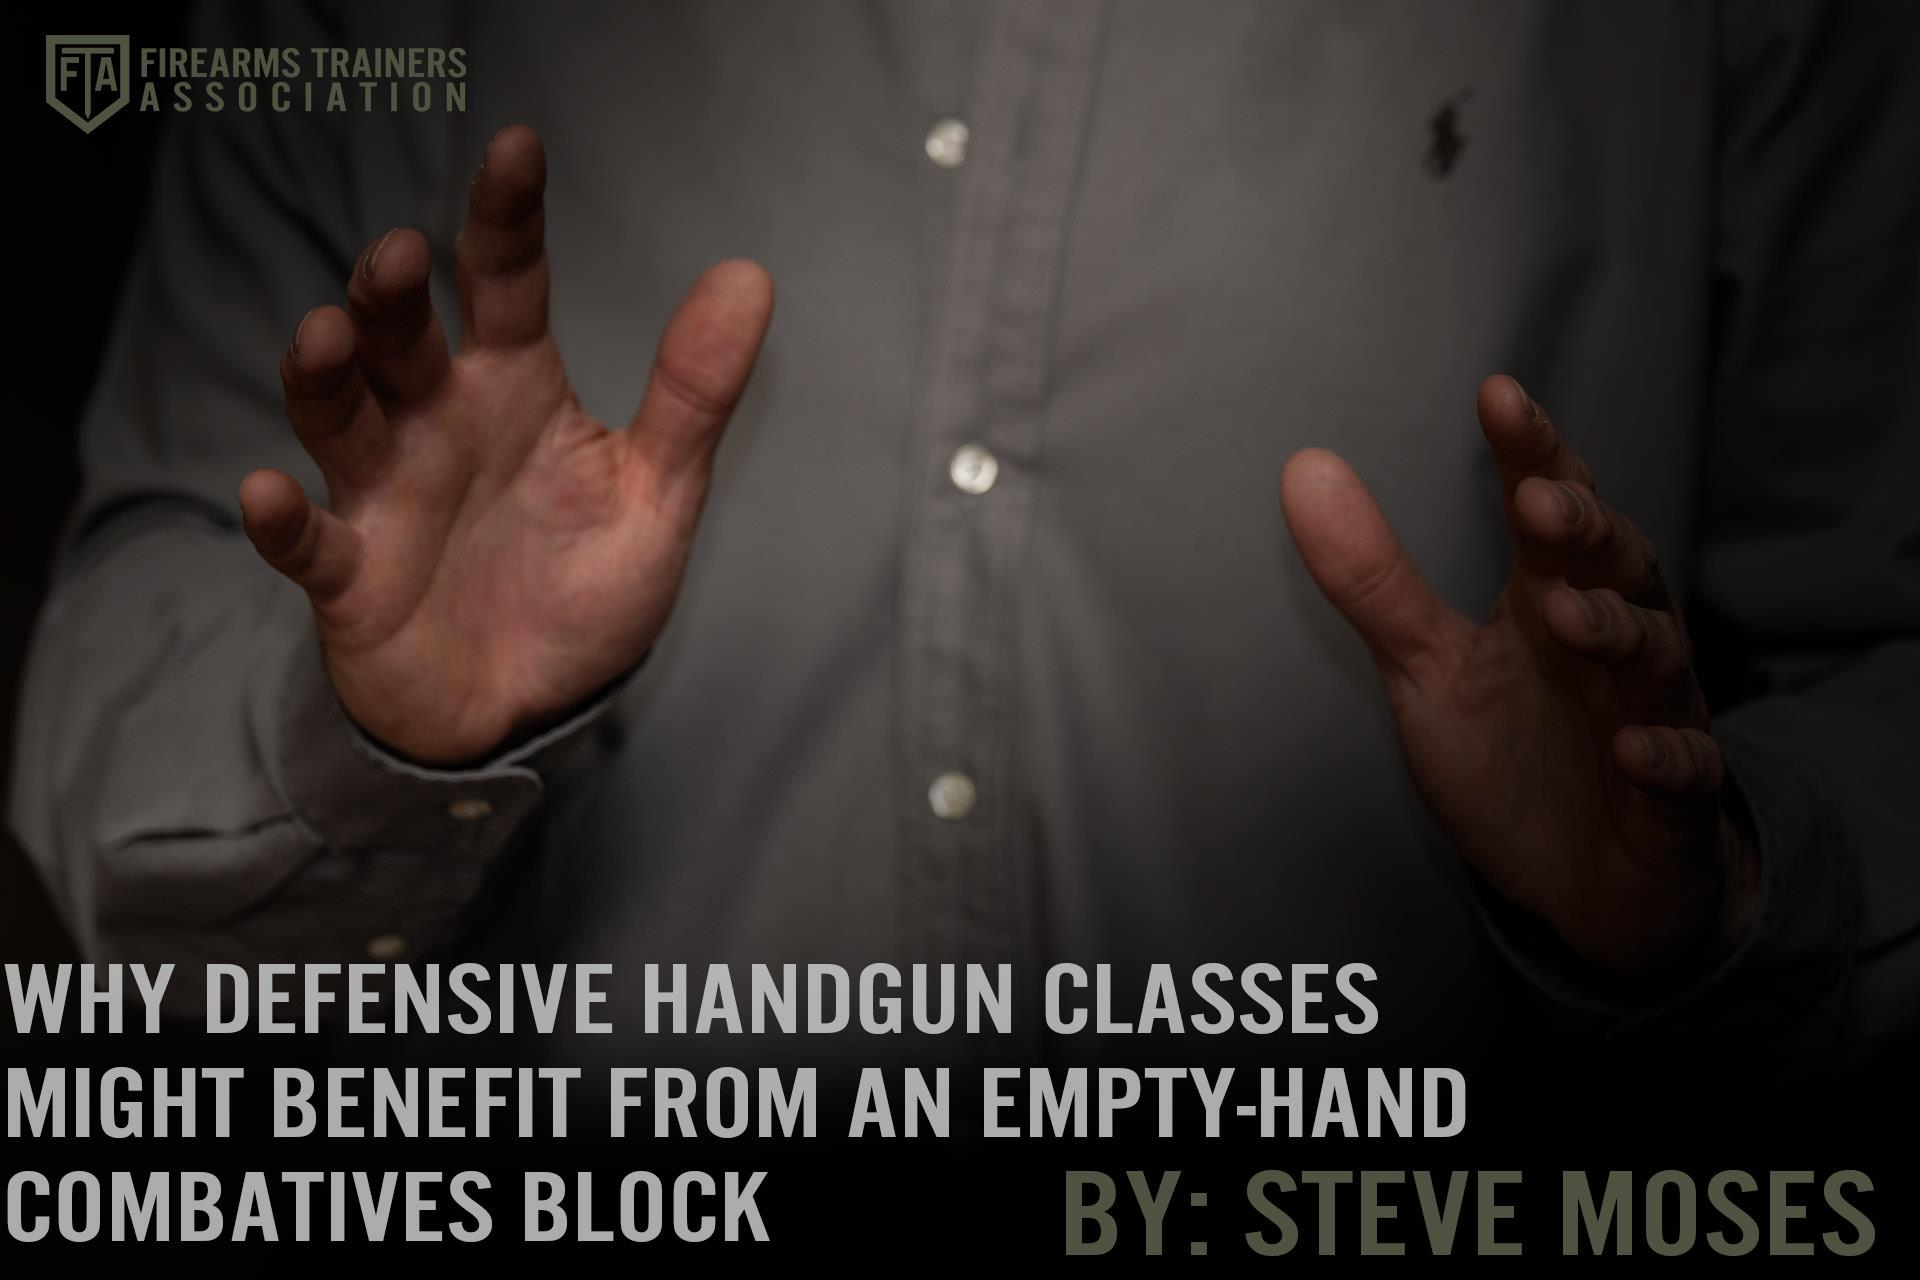 WHY DEFENSIVE HANDGUN CLASSES MIGHT BENEFIT FROM AN EMPTY-HAND COMBATIVES BLOCK